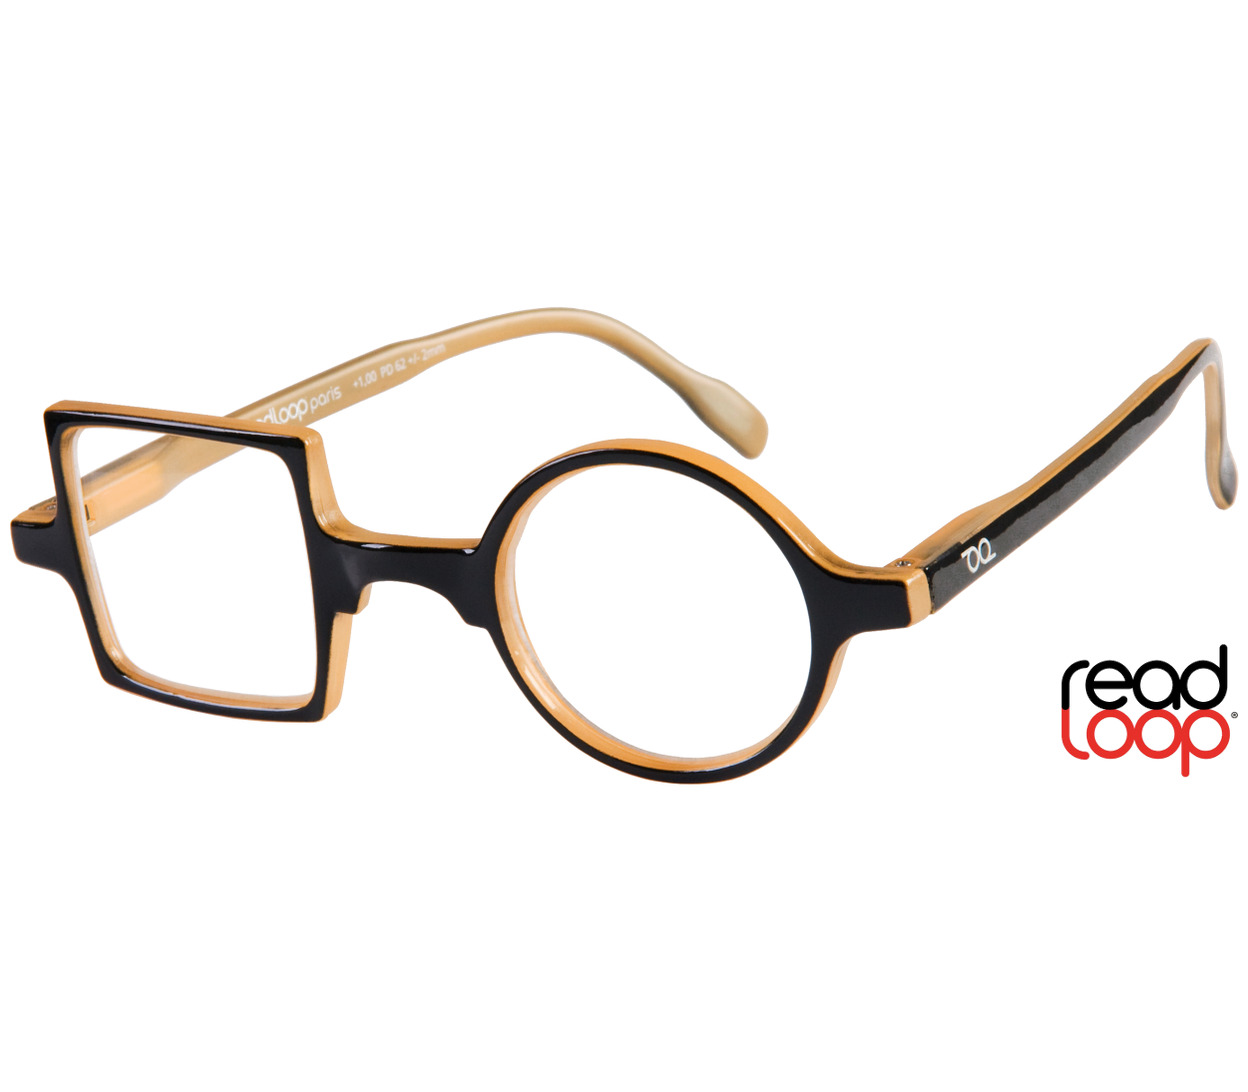 Main Image (Angle) - Patchwork (Black) Reading Glasses